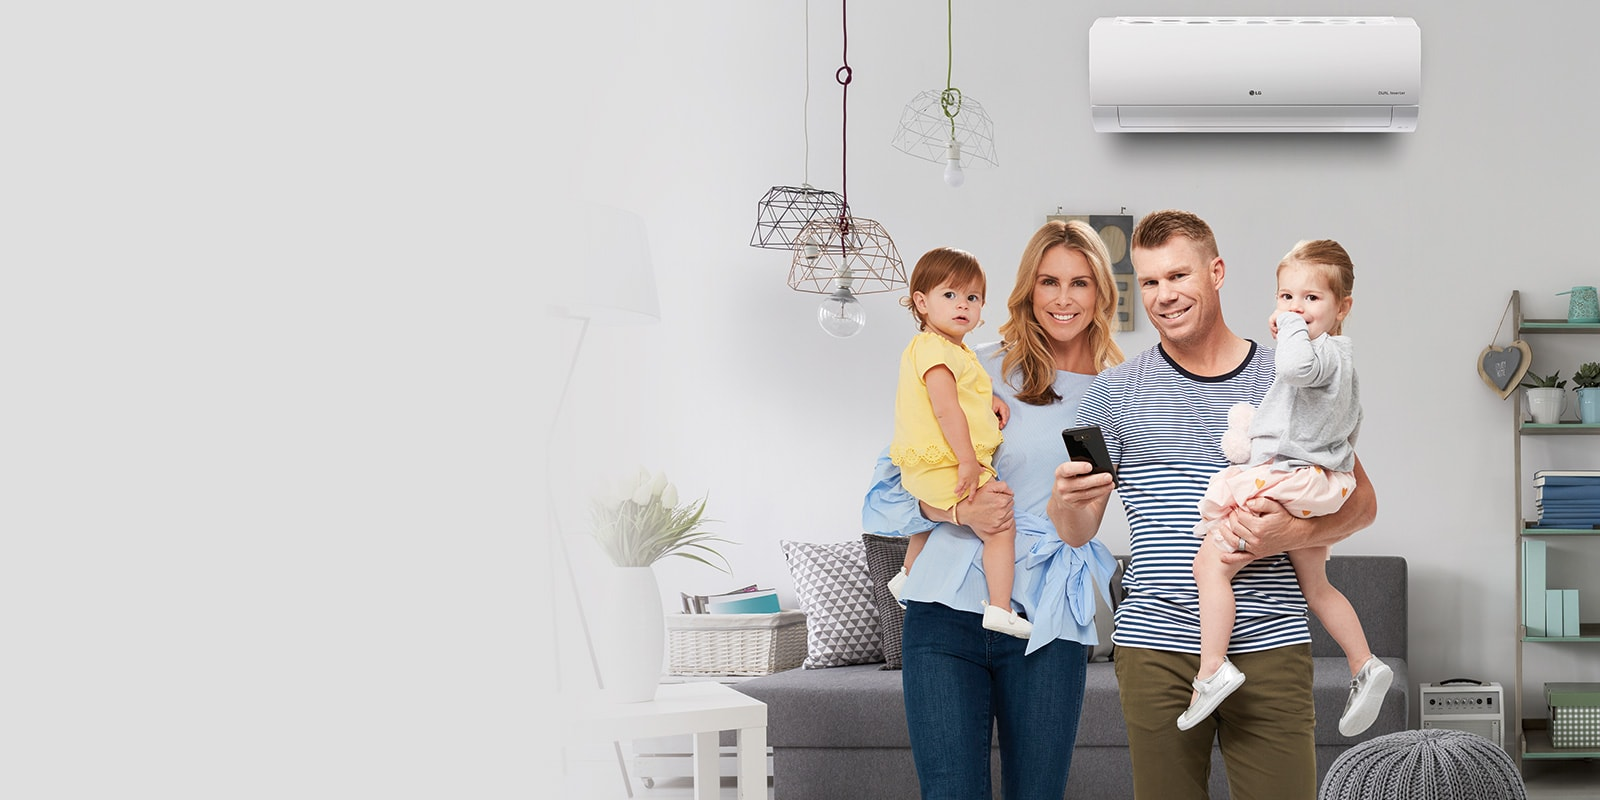 Home Air Conditioning Smarter Energy Saving Cooling Lg